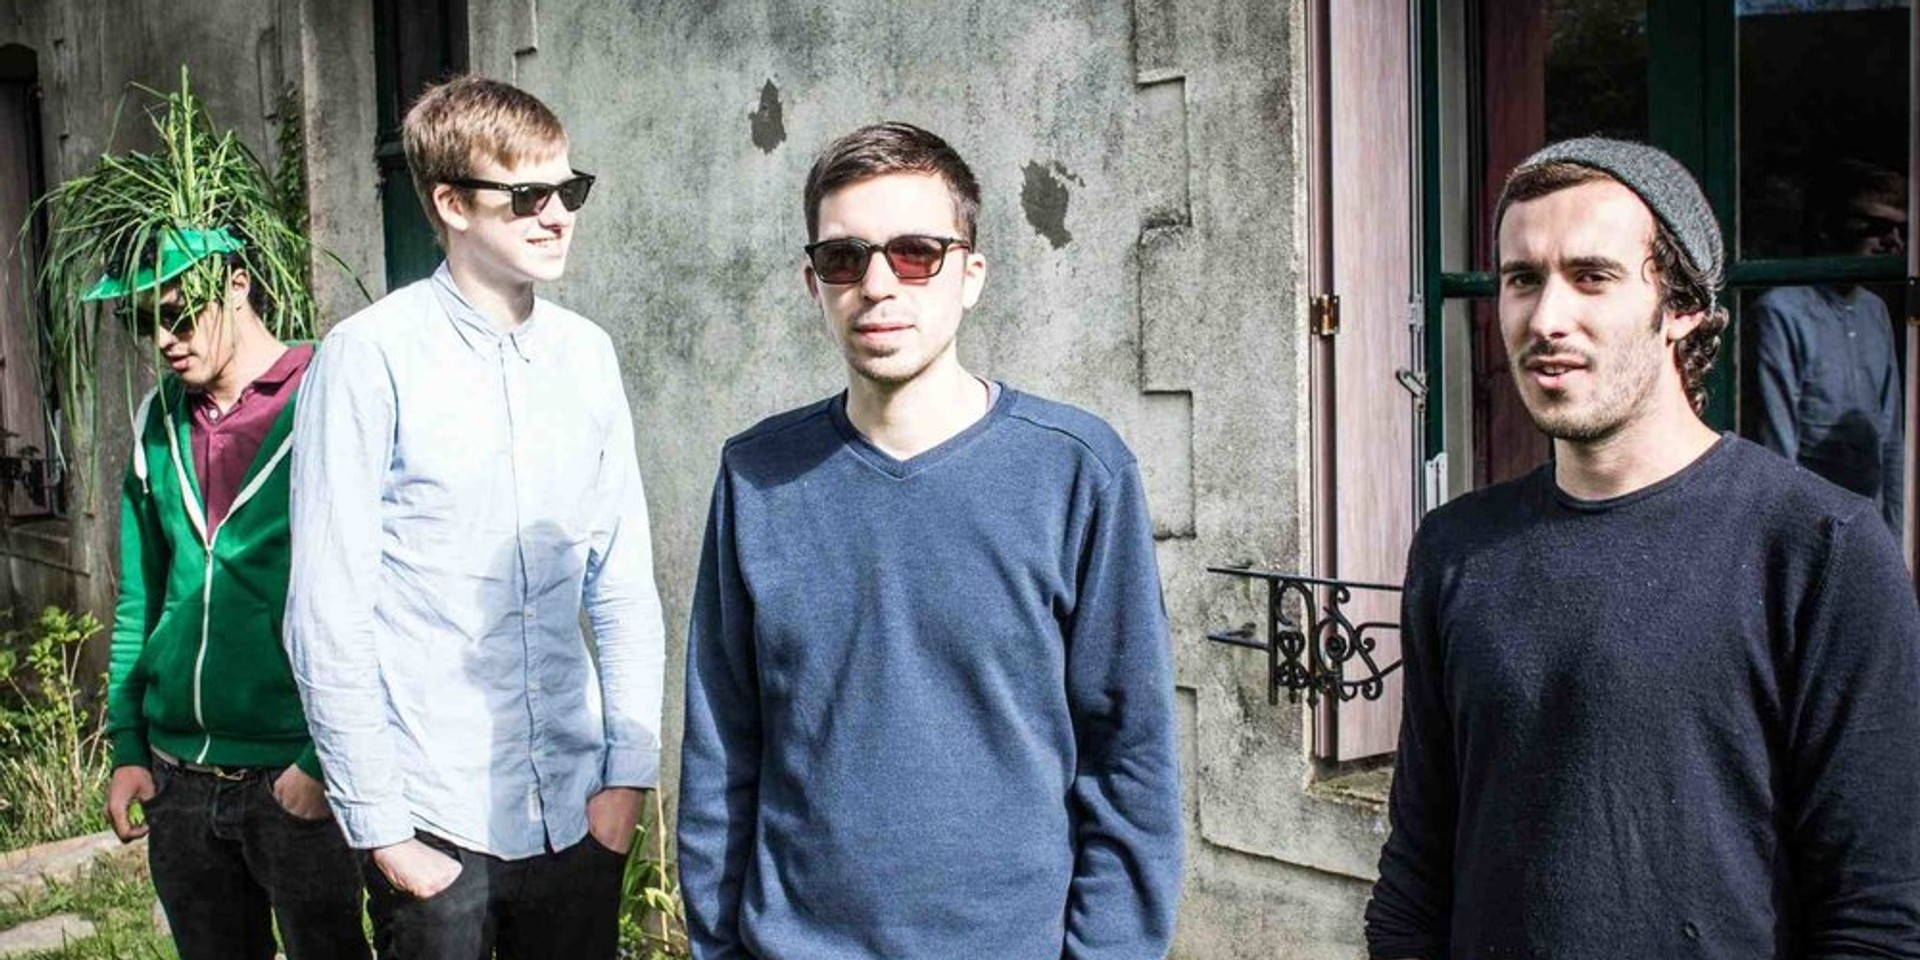 French math rock band Totorro are coming to Singapore (not Mexico)